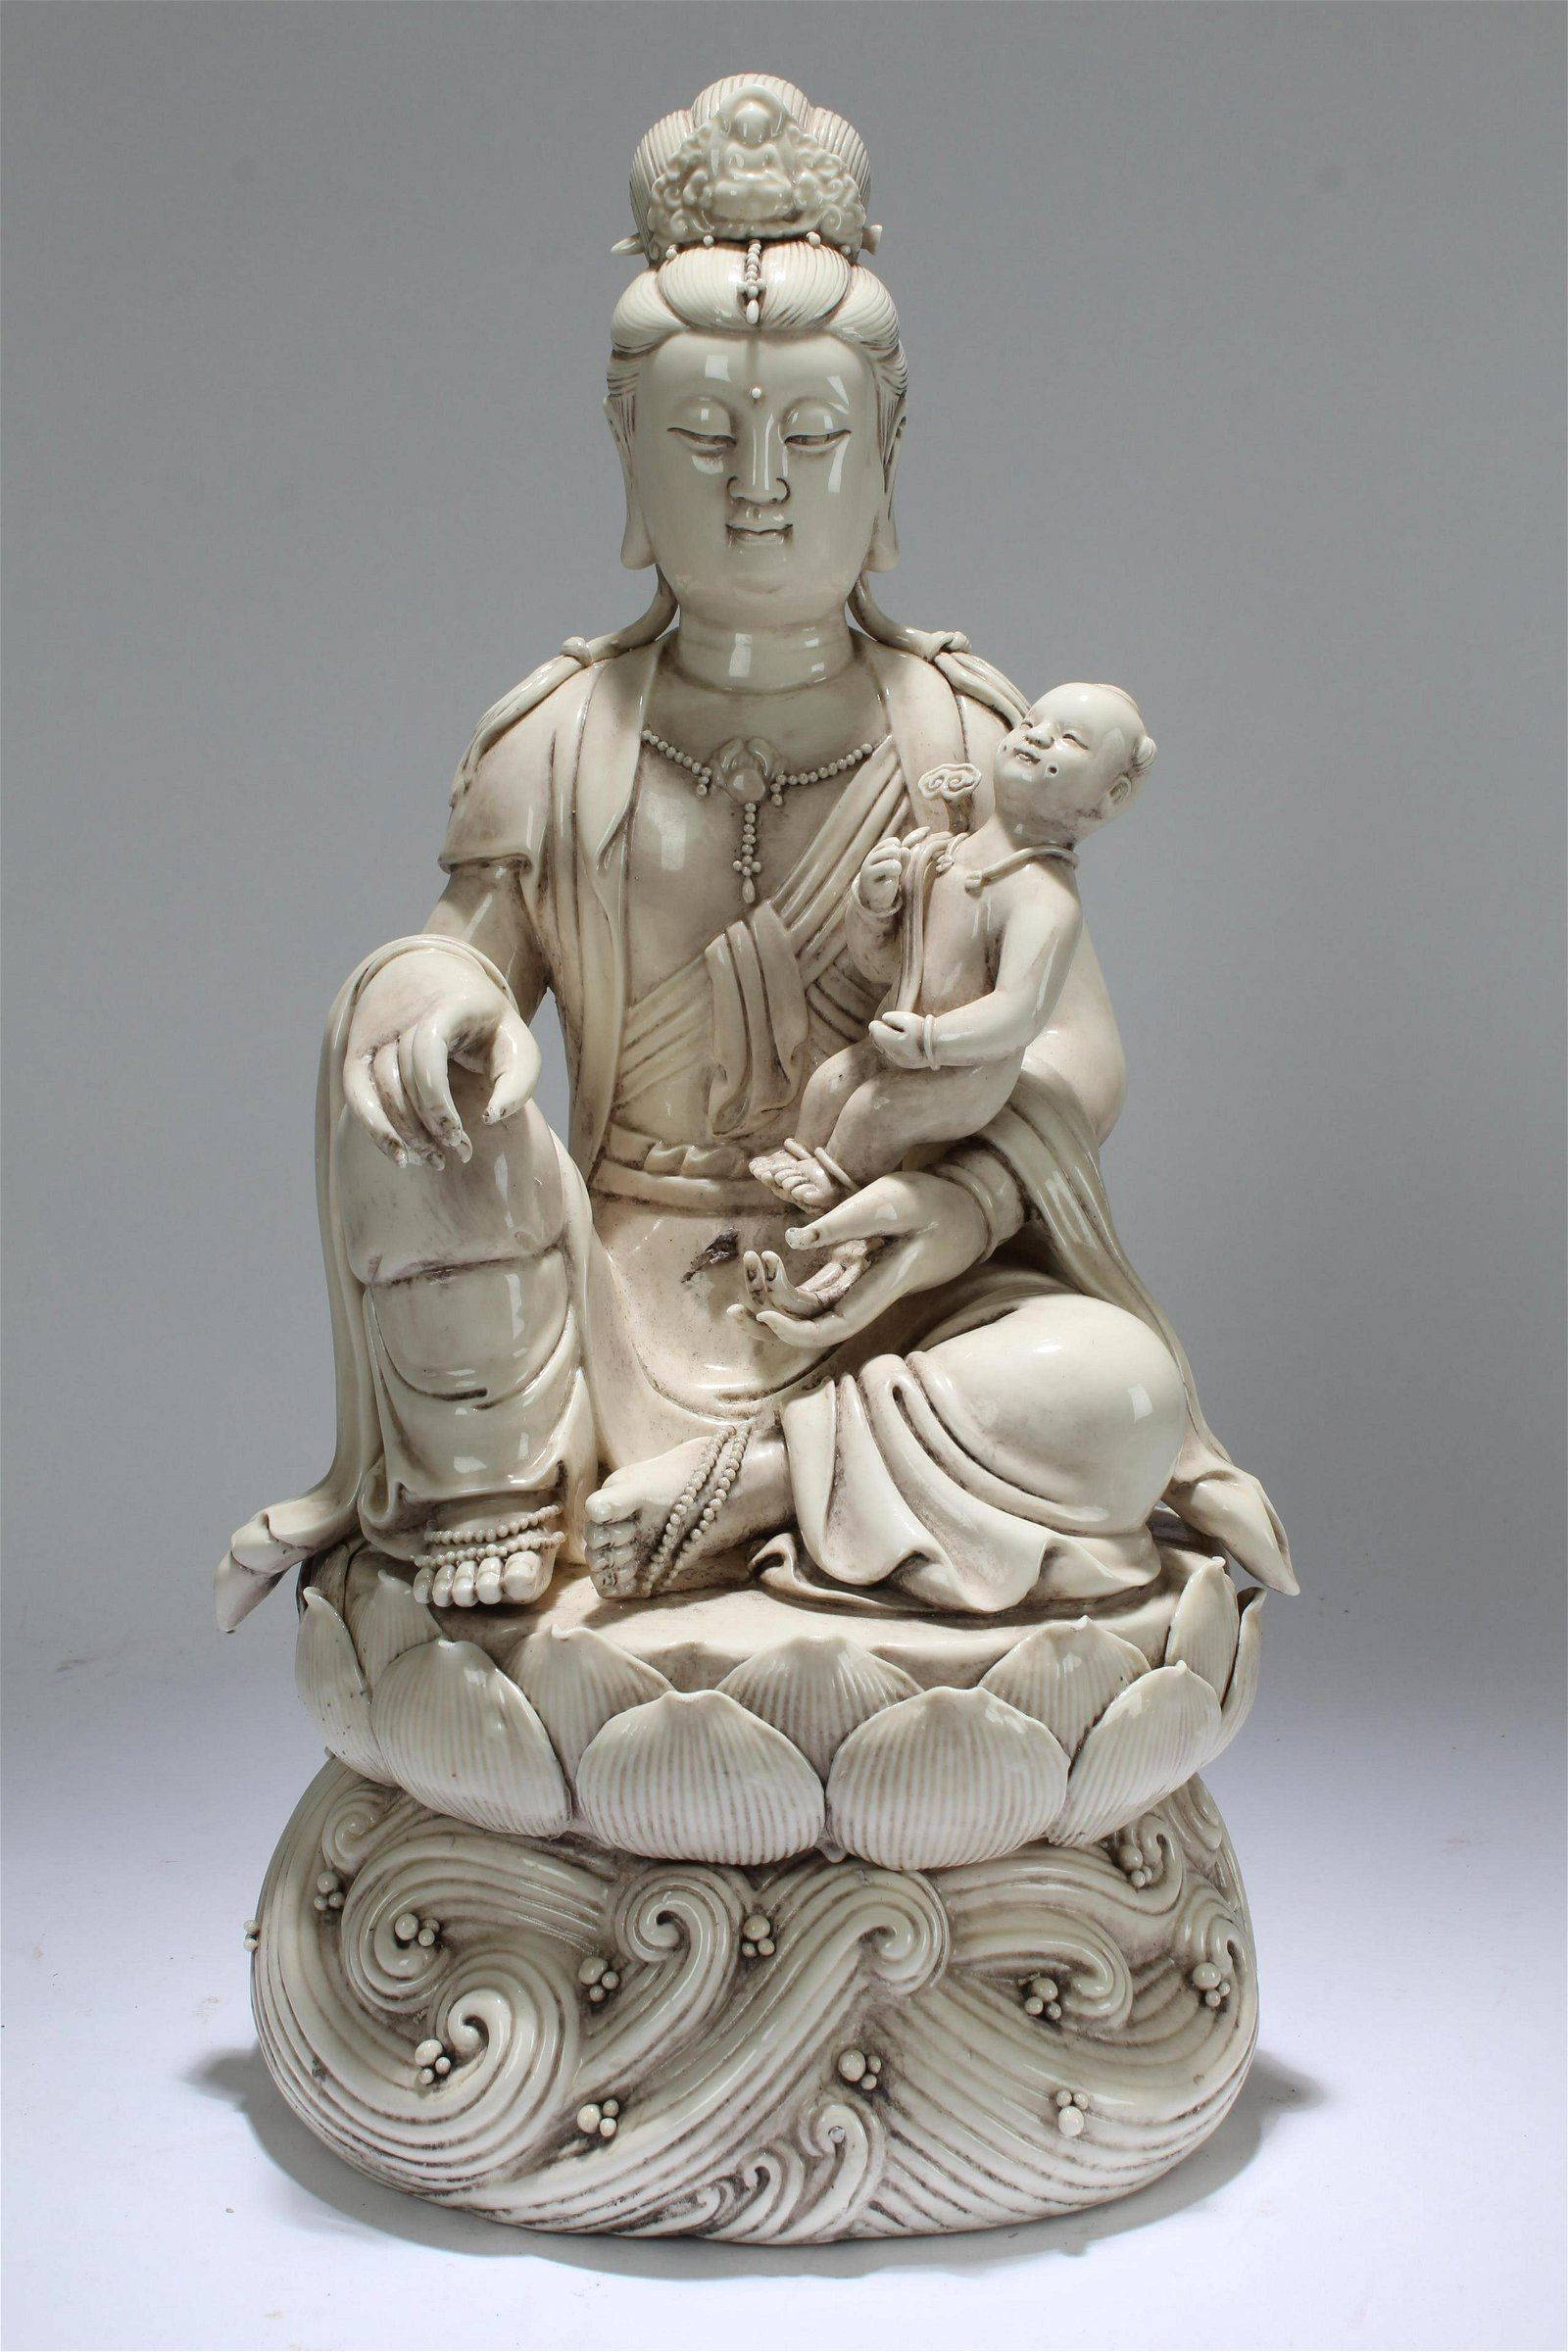 An Estate Chinese Joyful-kid De Blac Porcelain Guanyin